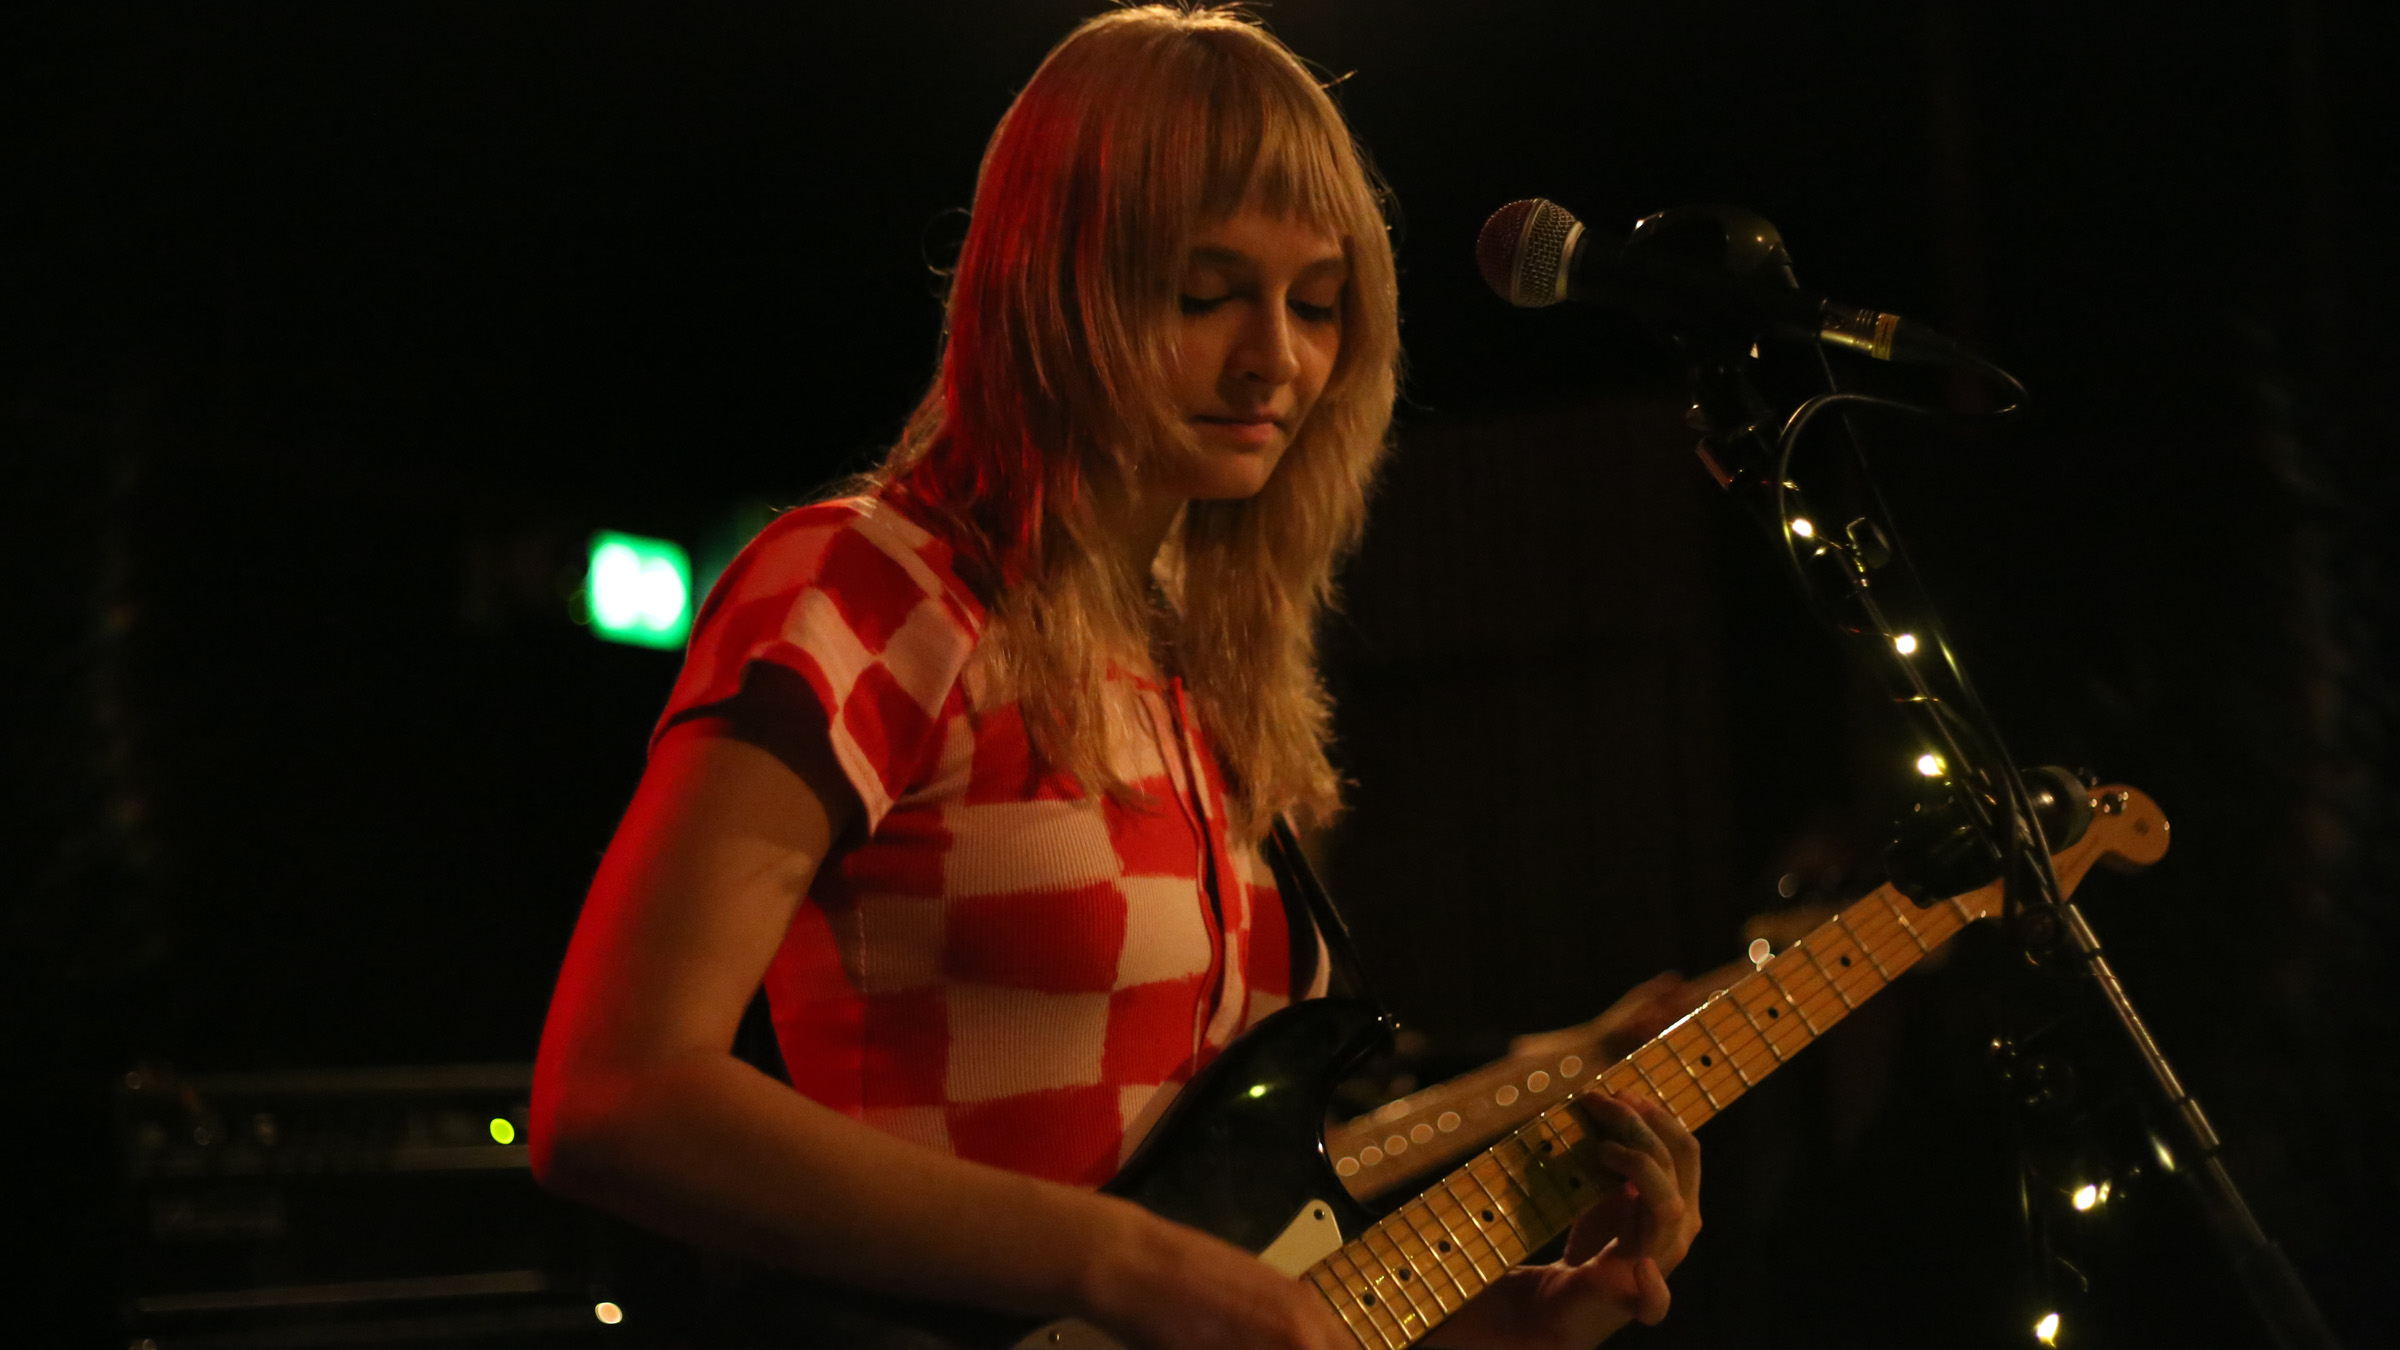 Clementine Creevy of Cherry Glazerr live at Ideal Bar in Copenhagen